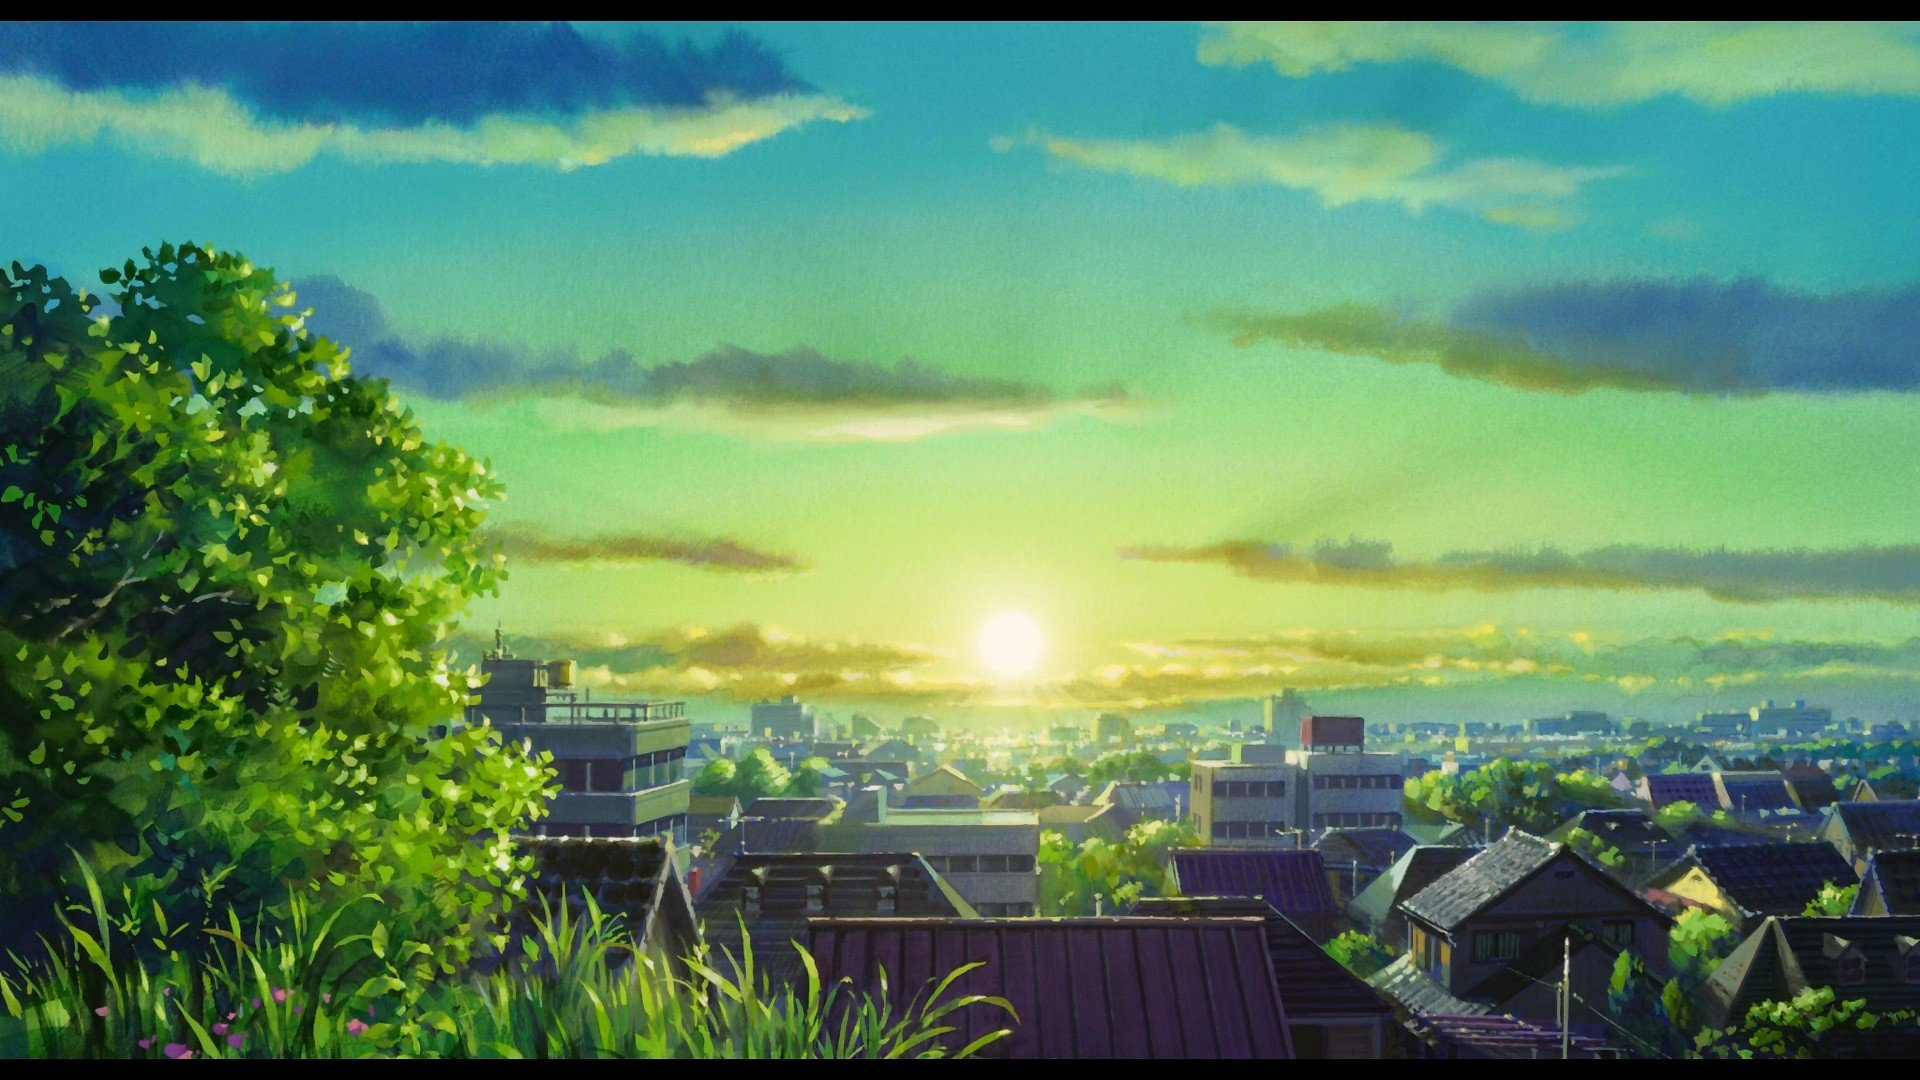 Sun Trees Cityscapes Anime Karigurashi No Arrietty The Secret World Of Arrietty Wallpaper 1920x1080 311410 Wallpaperup